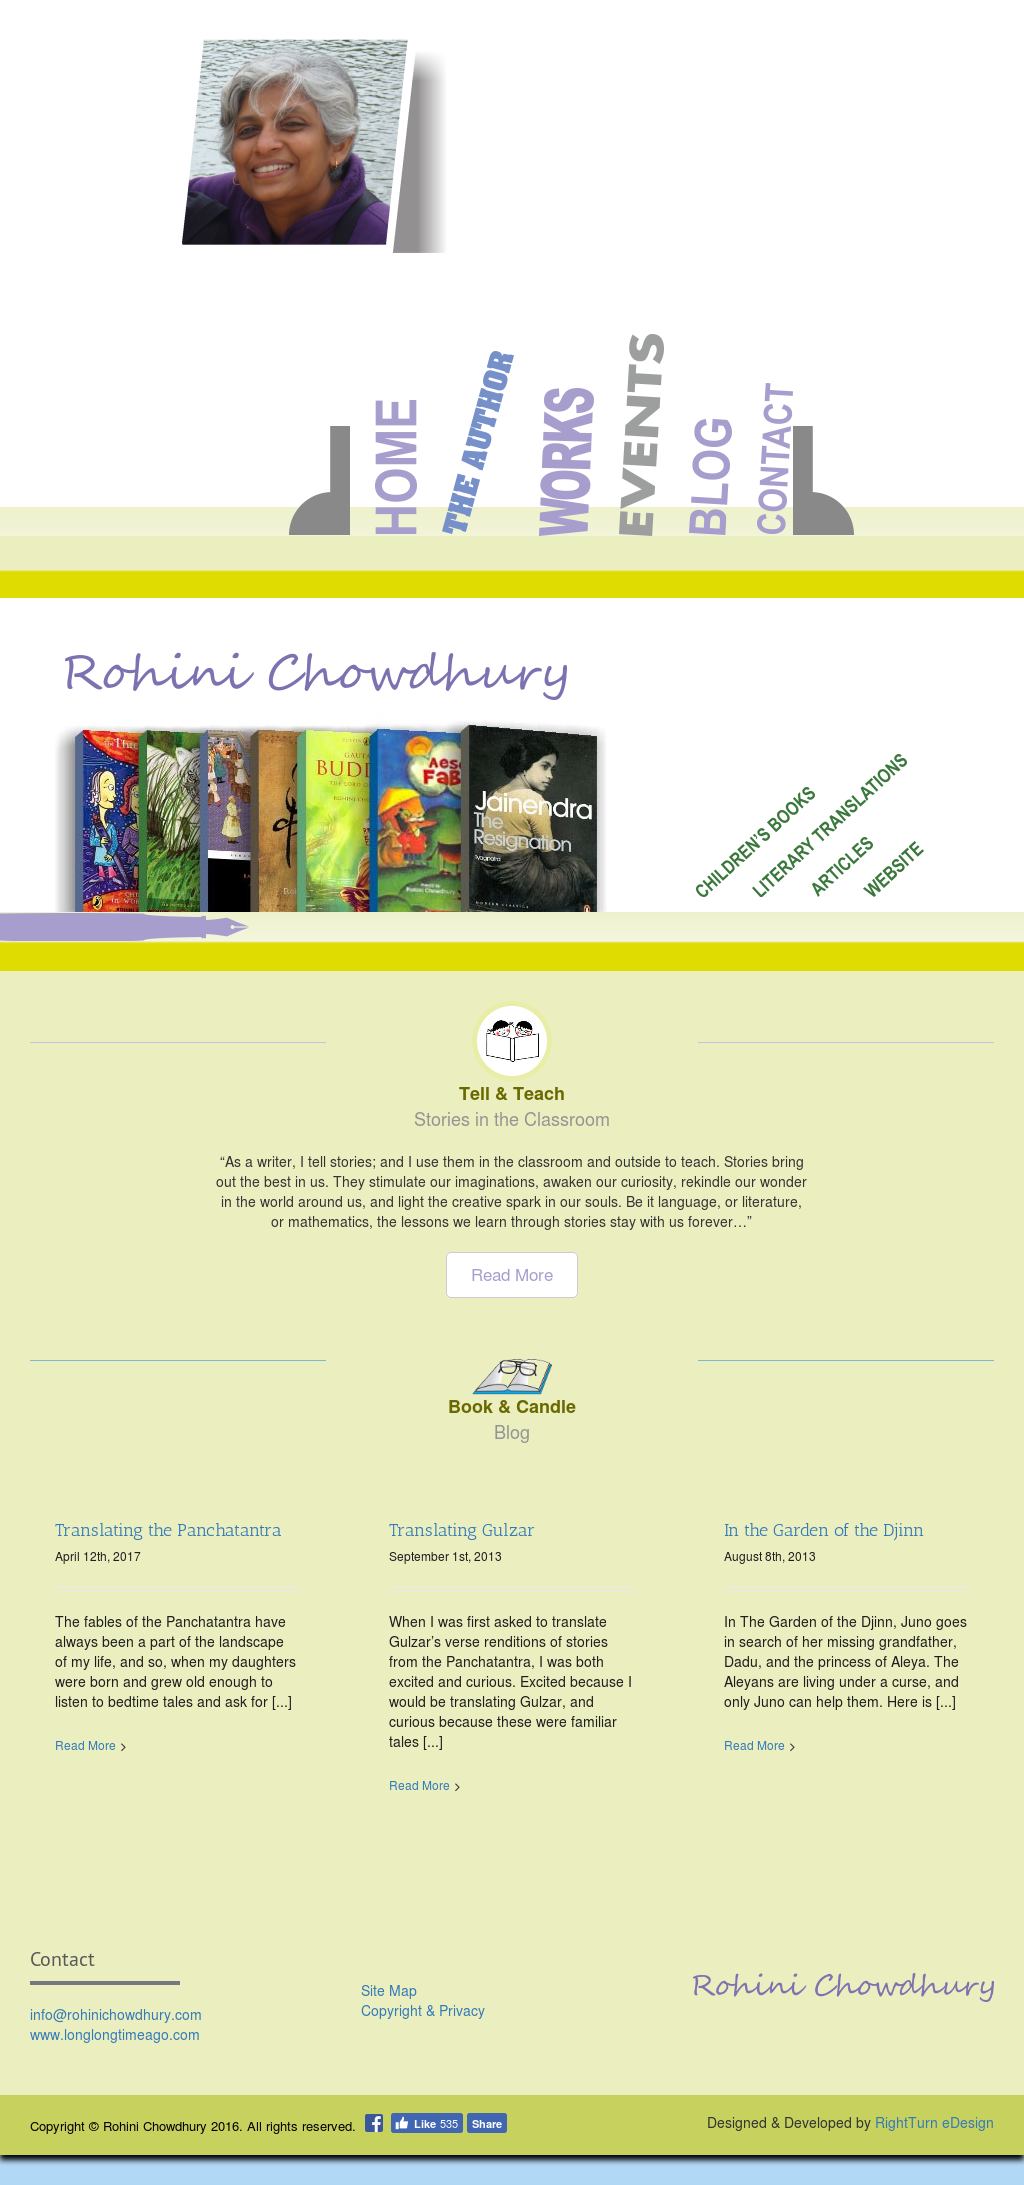 Rohini Chowdhury Competitors, Revenue and Employees - Owler